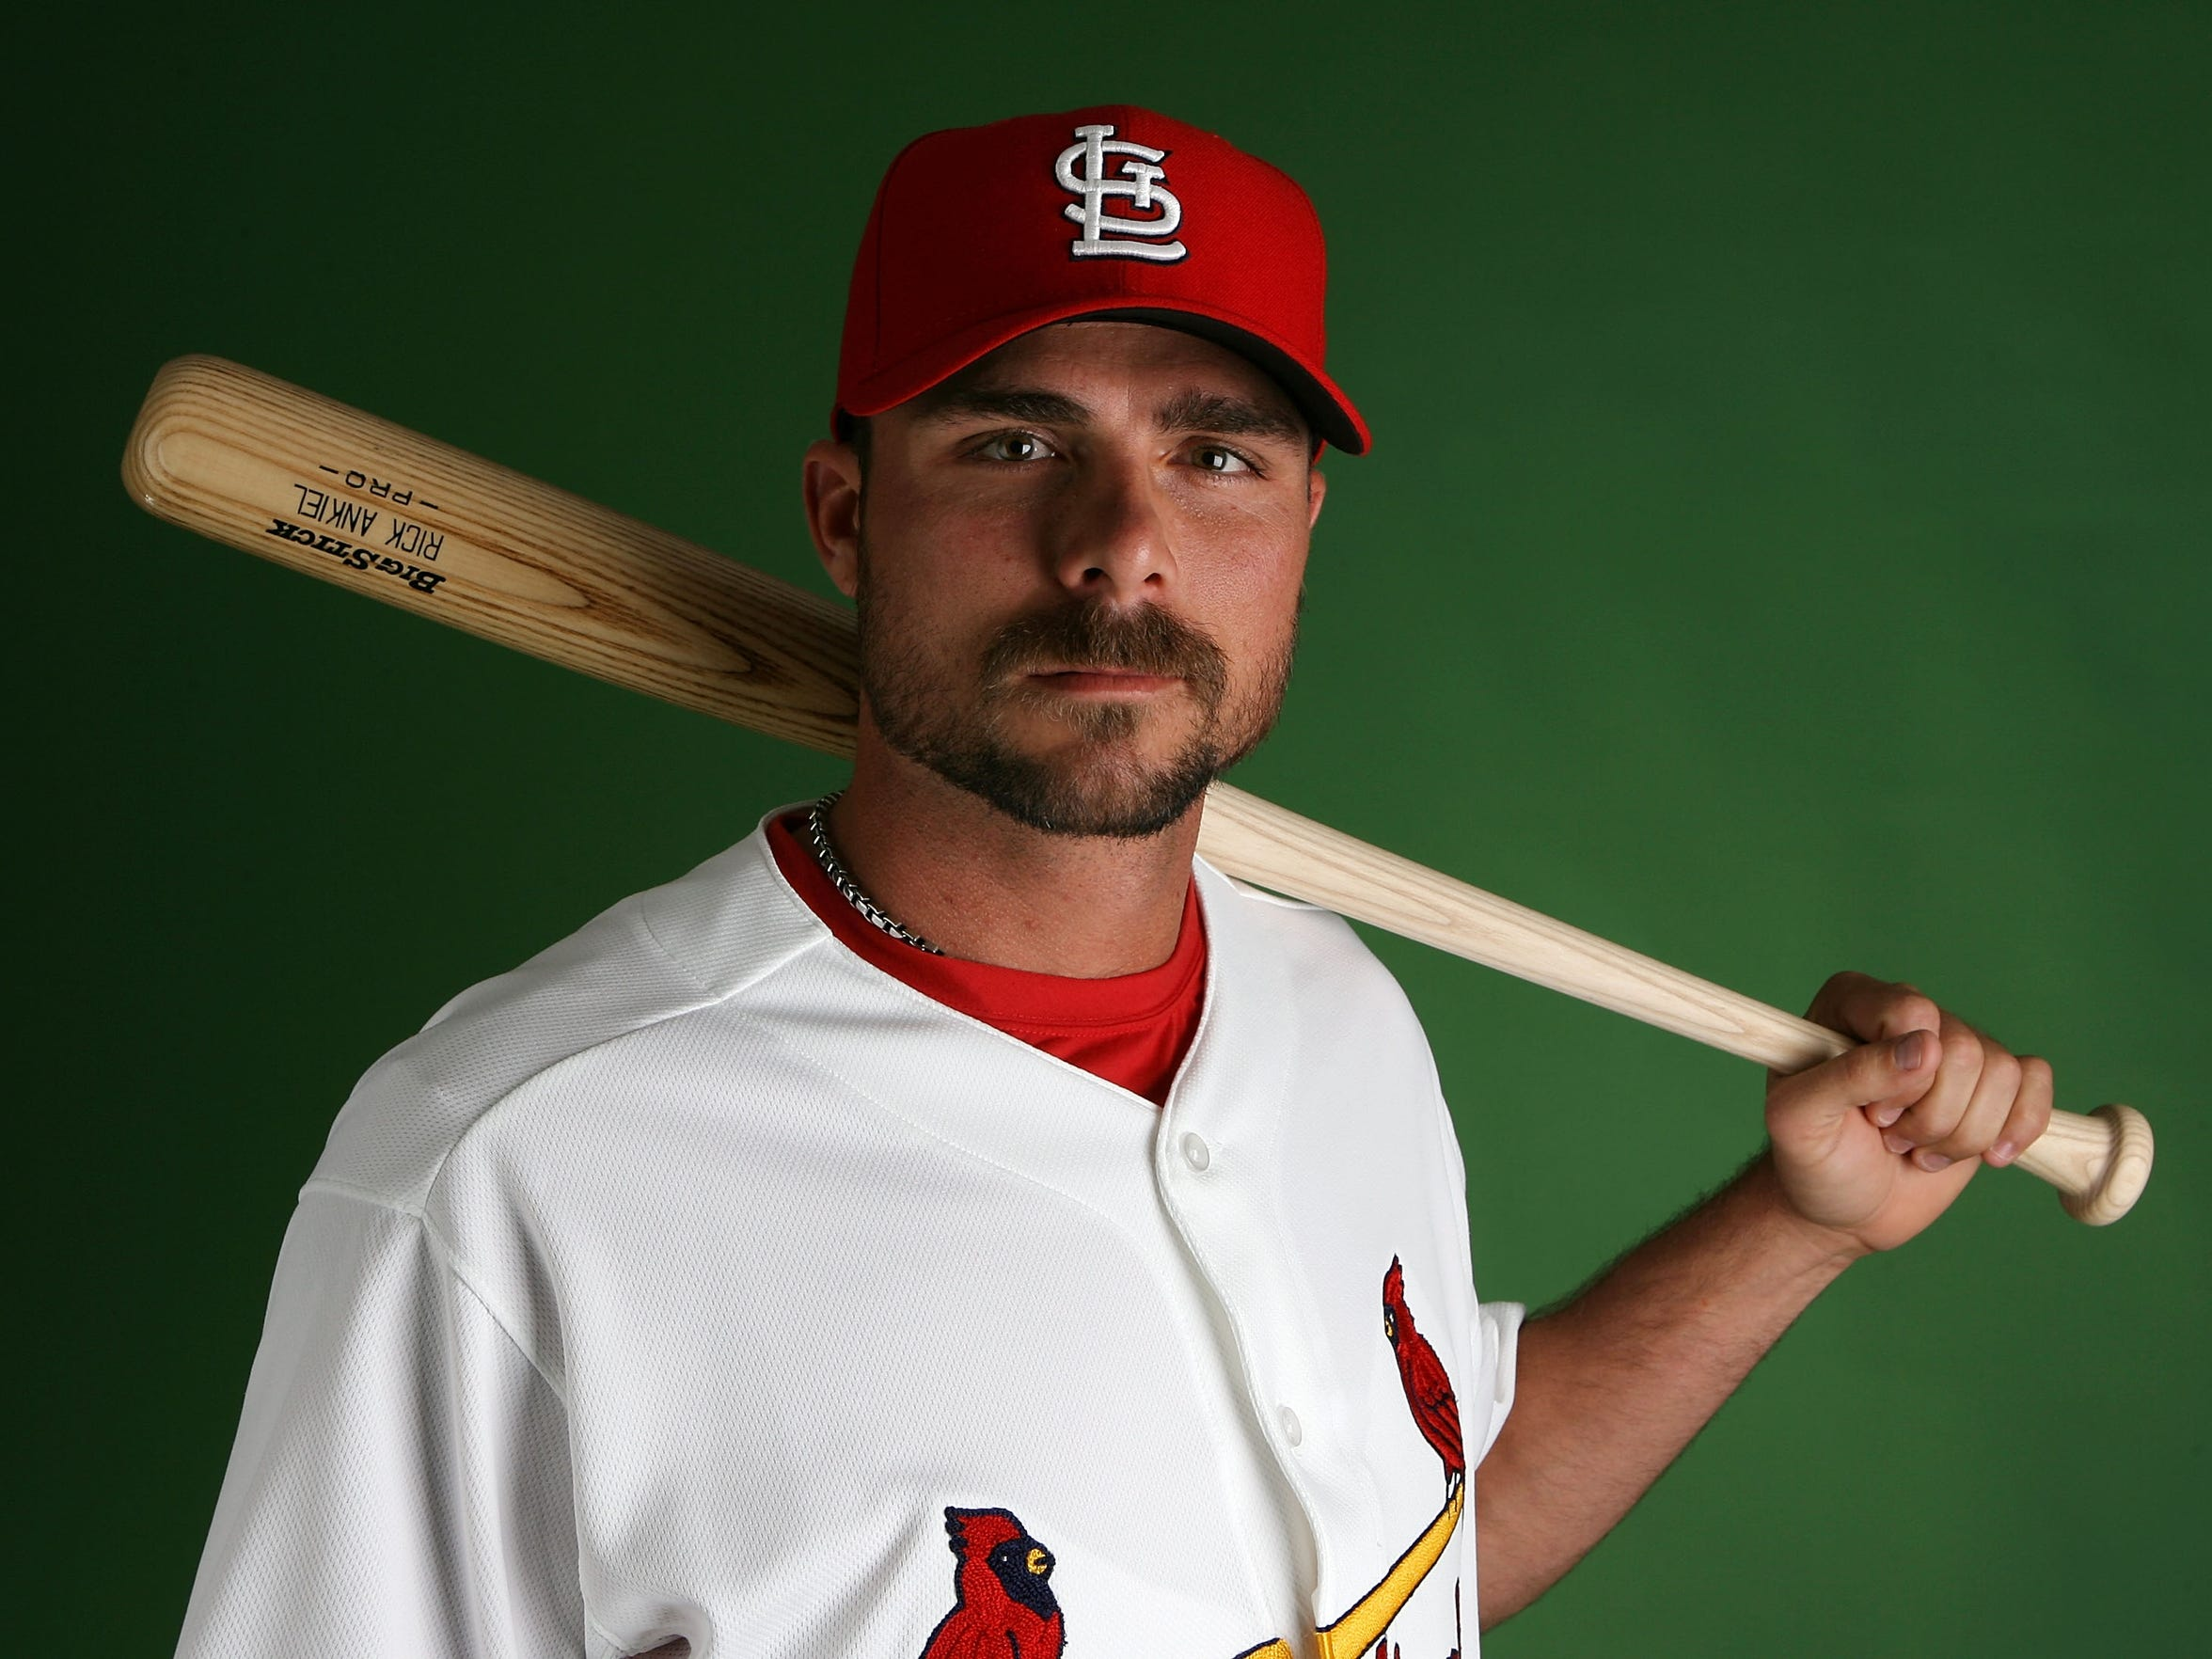 Rick Ankiel wrote about his mental health struggles